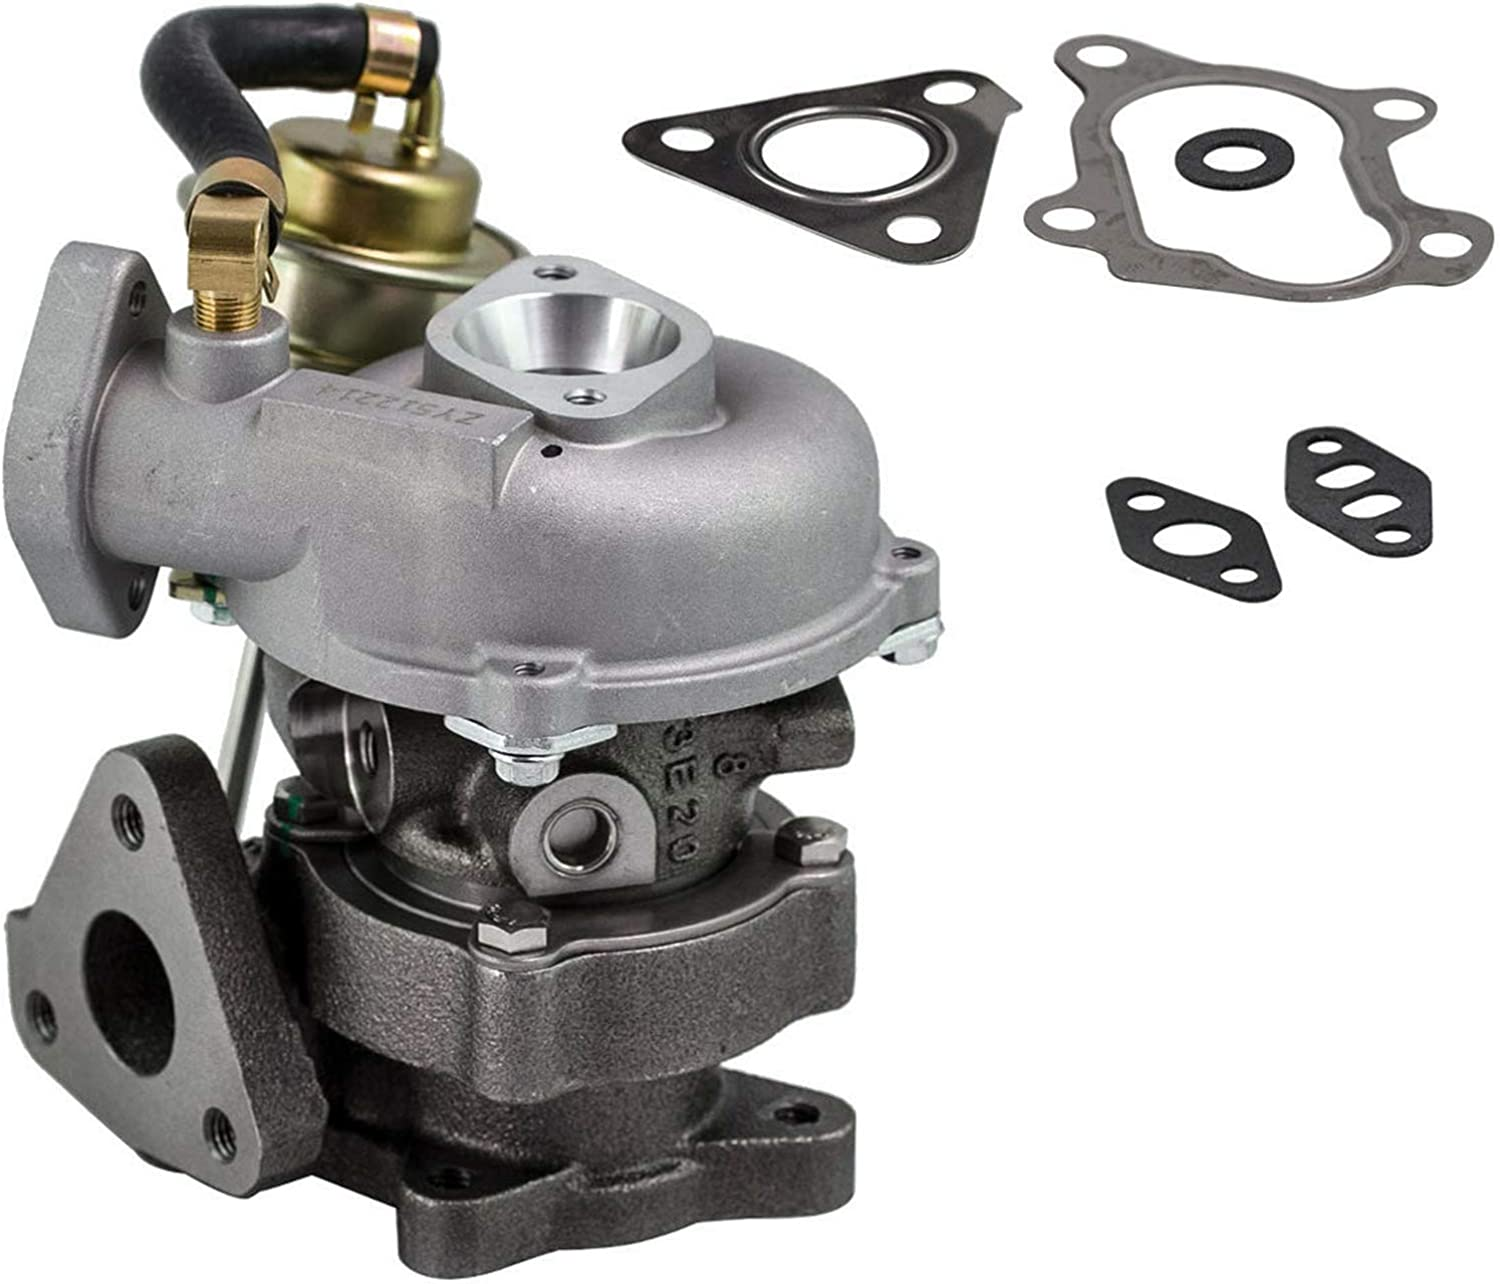 Recommended Sz Machparts VZ21 Mini Turbocharger Small for Engi San Antonio Mall Turbo Charger